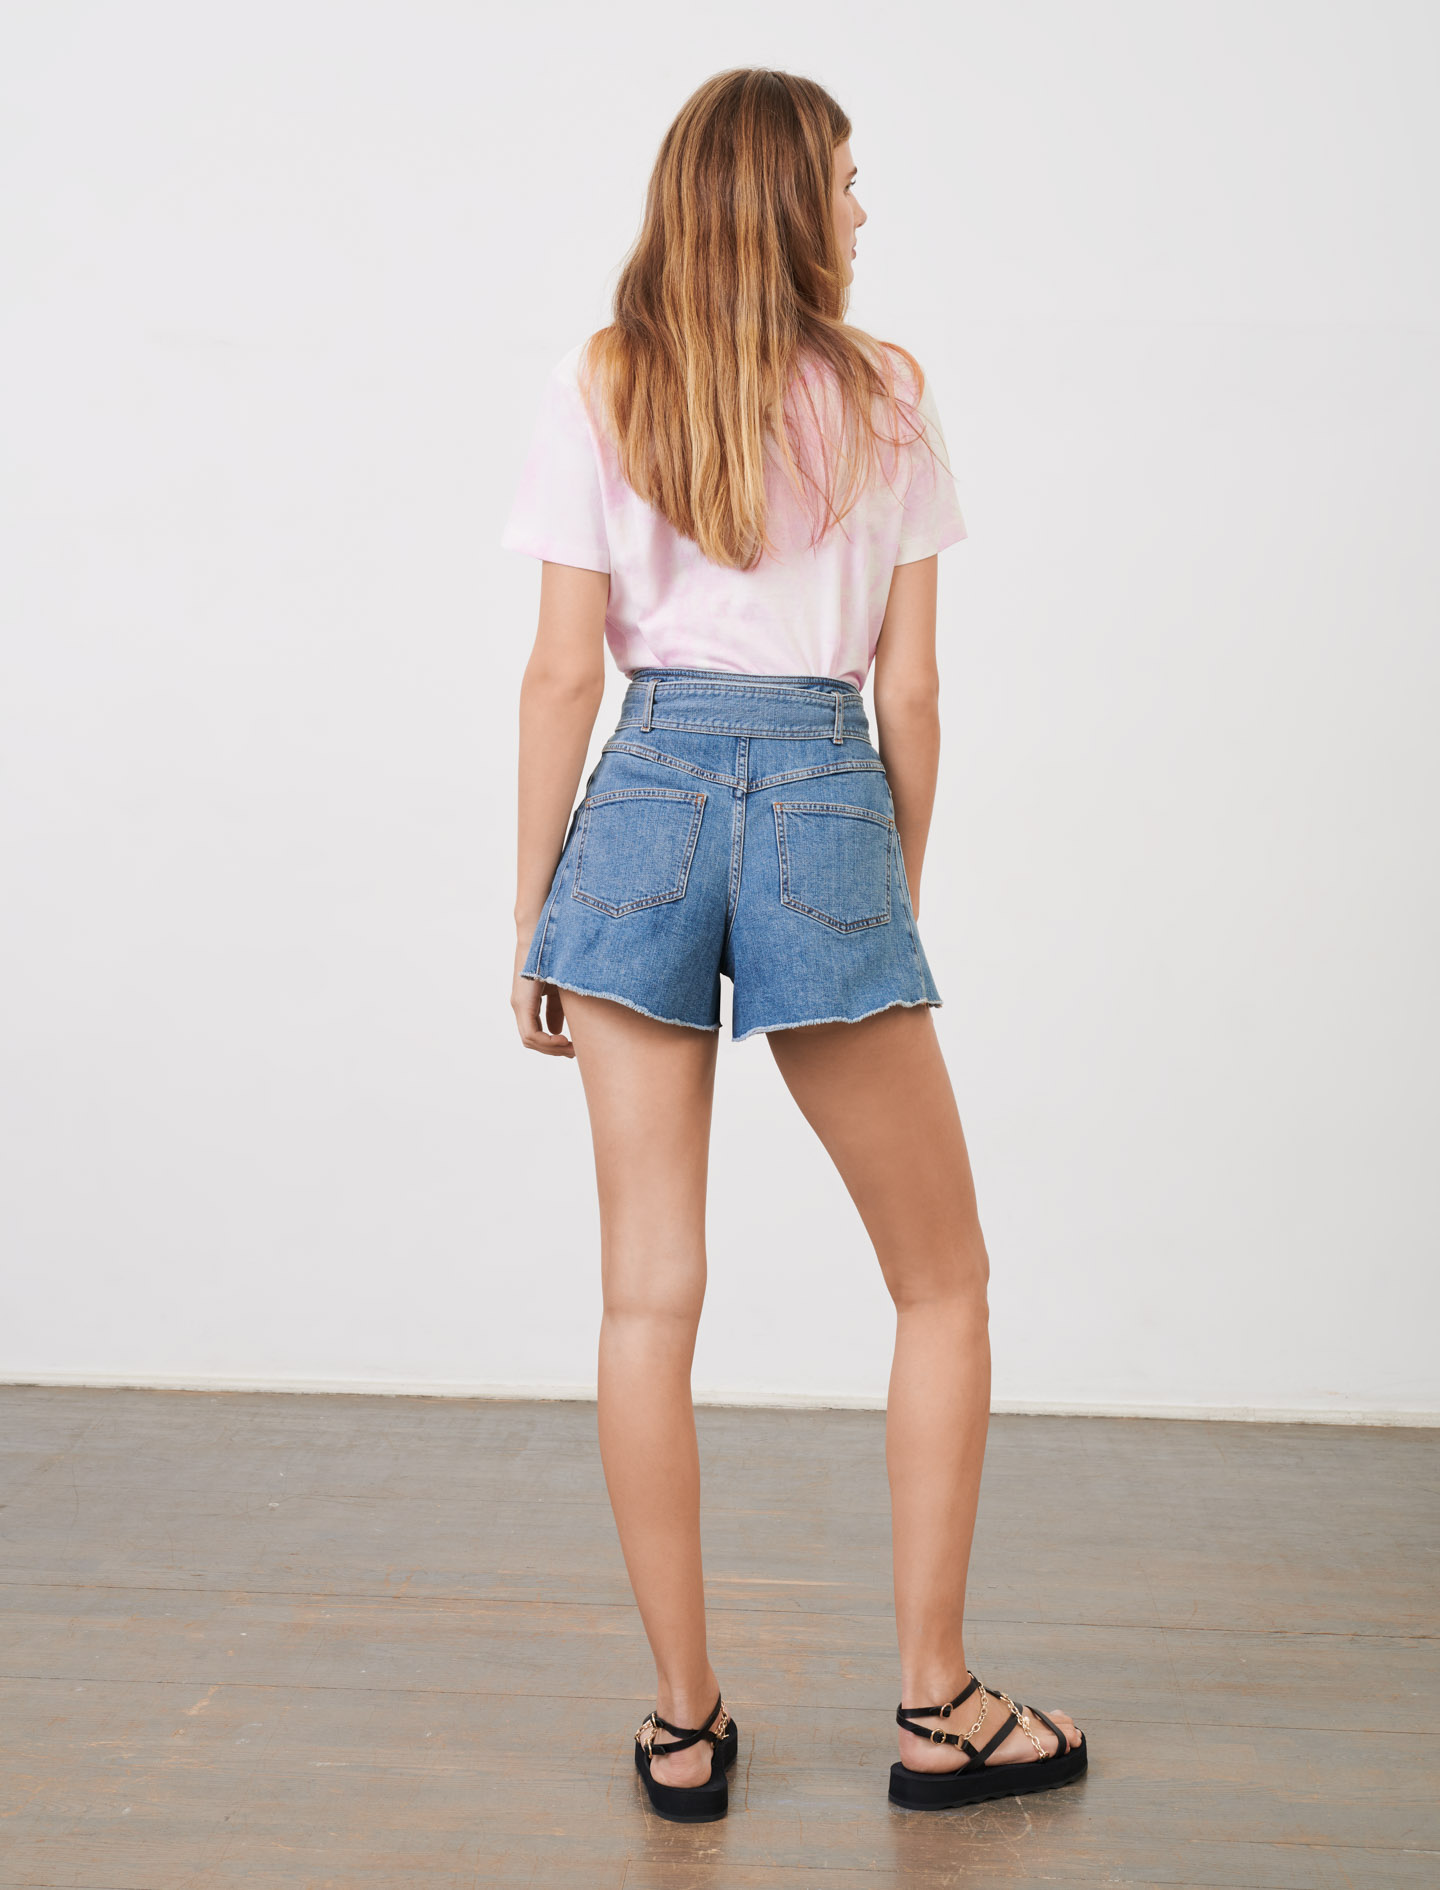 Belted skirt-style shorts